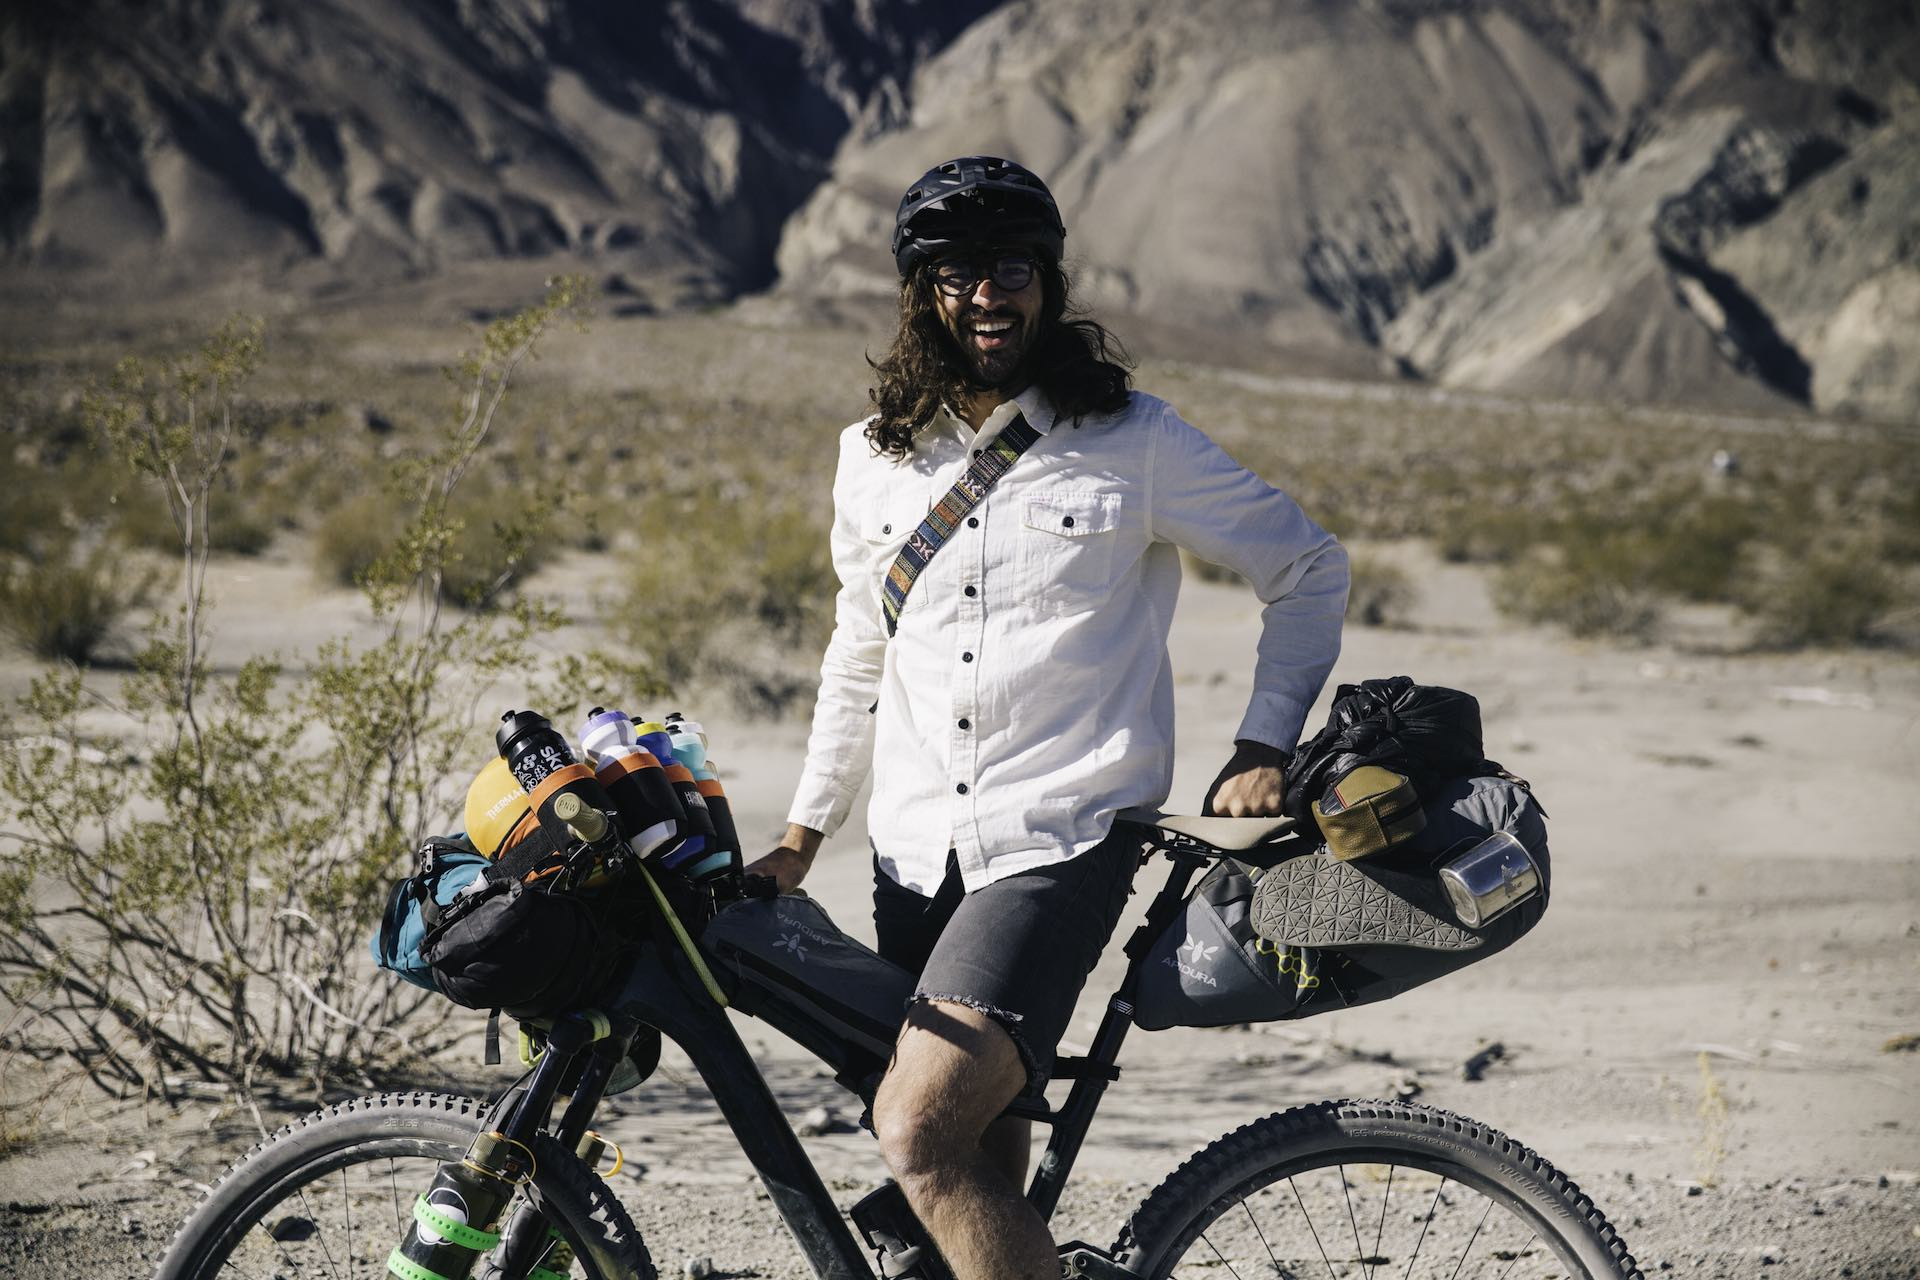 e mountain bike expedition across death valley